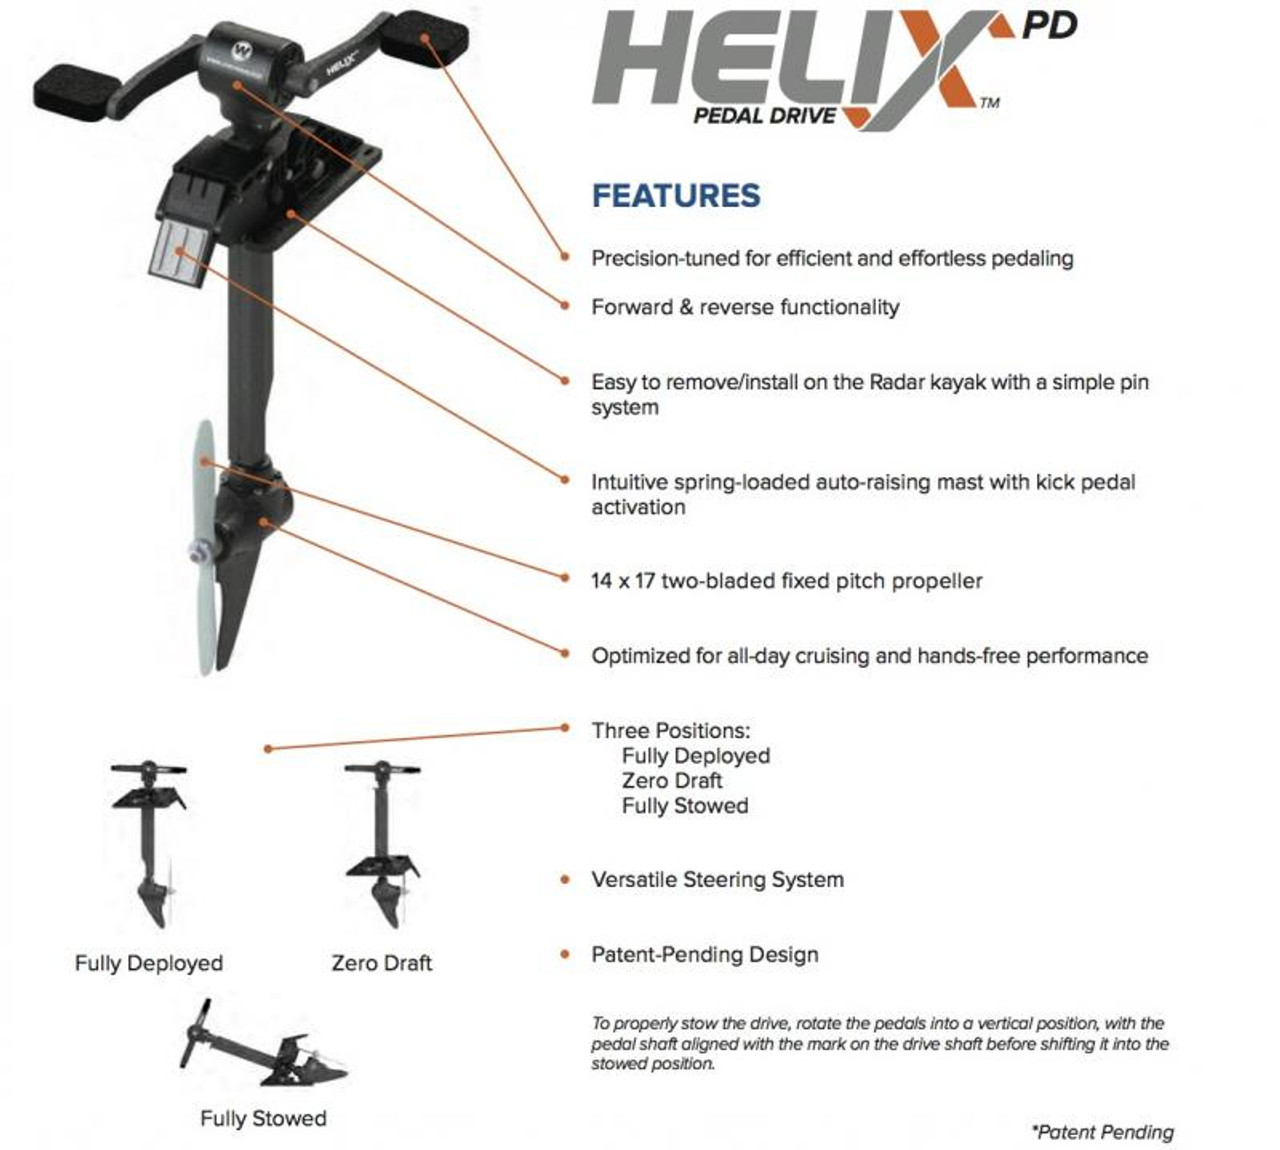 Helix Pedal Drive